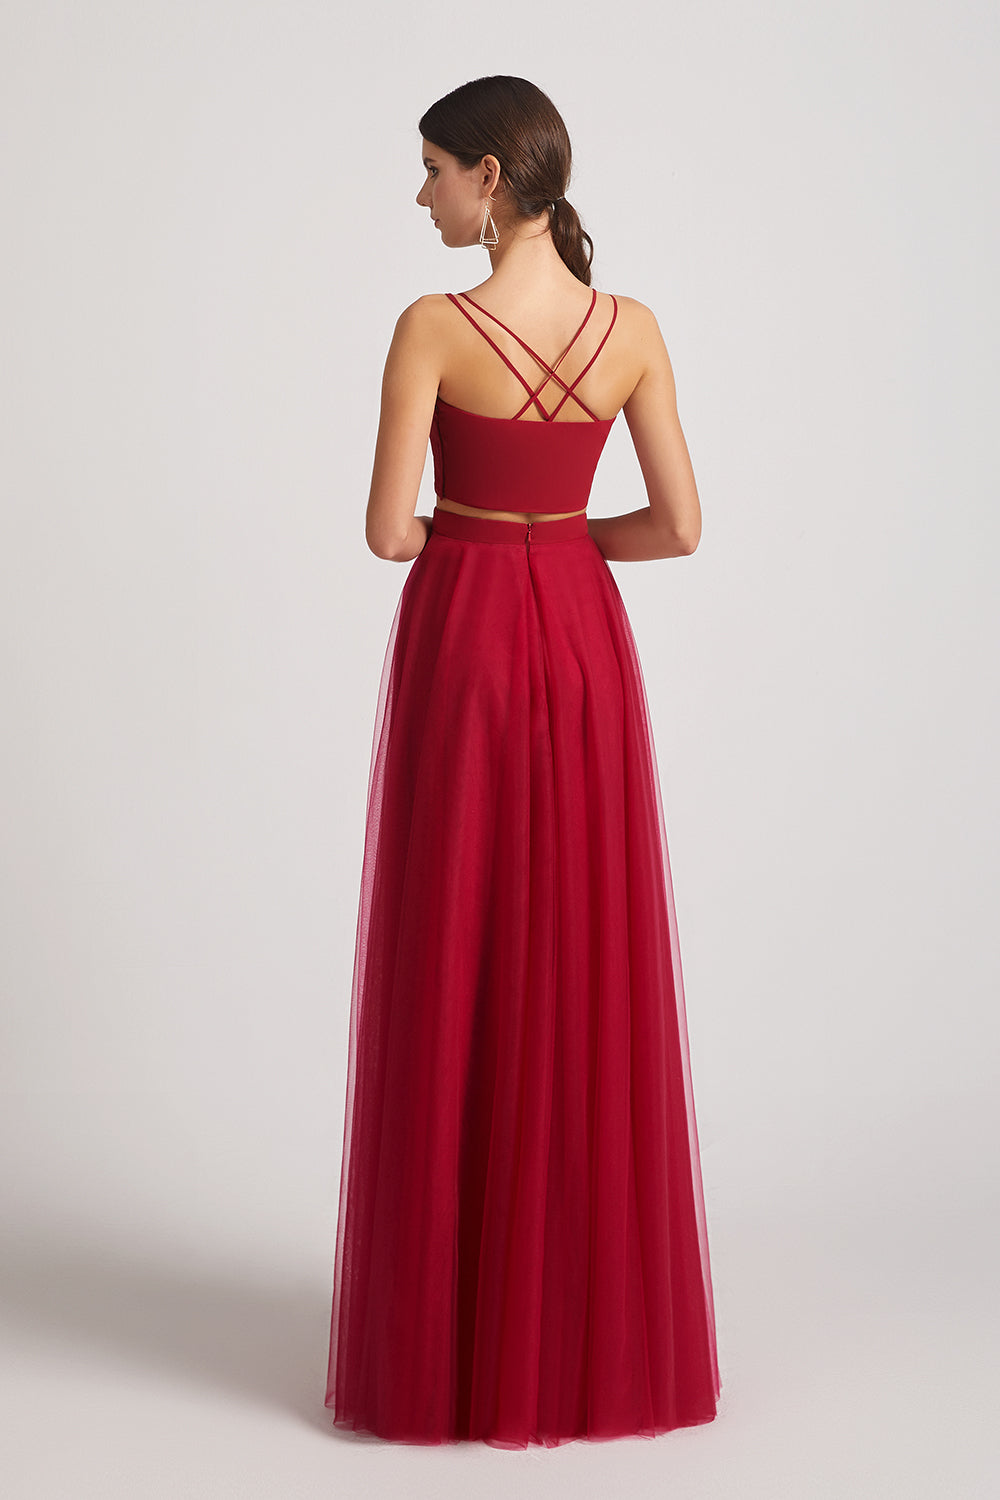 a-line sleeveless two pieces bridesmaid dresses